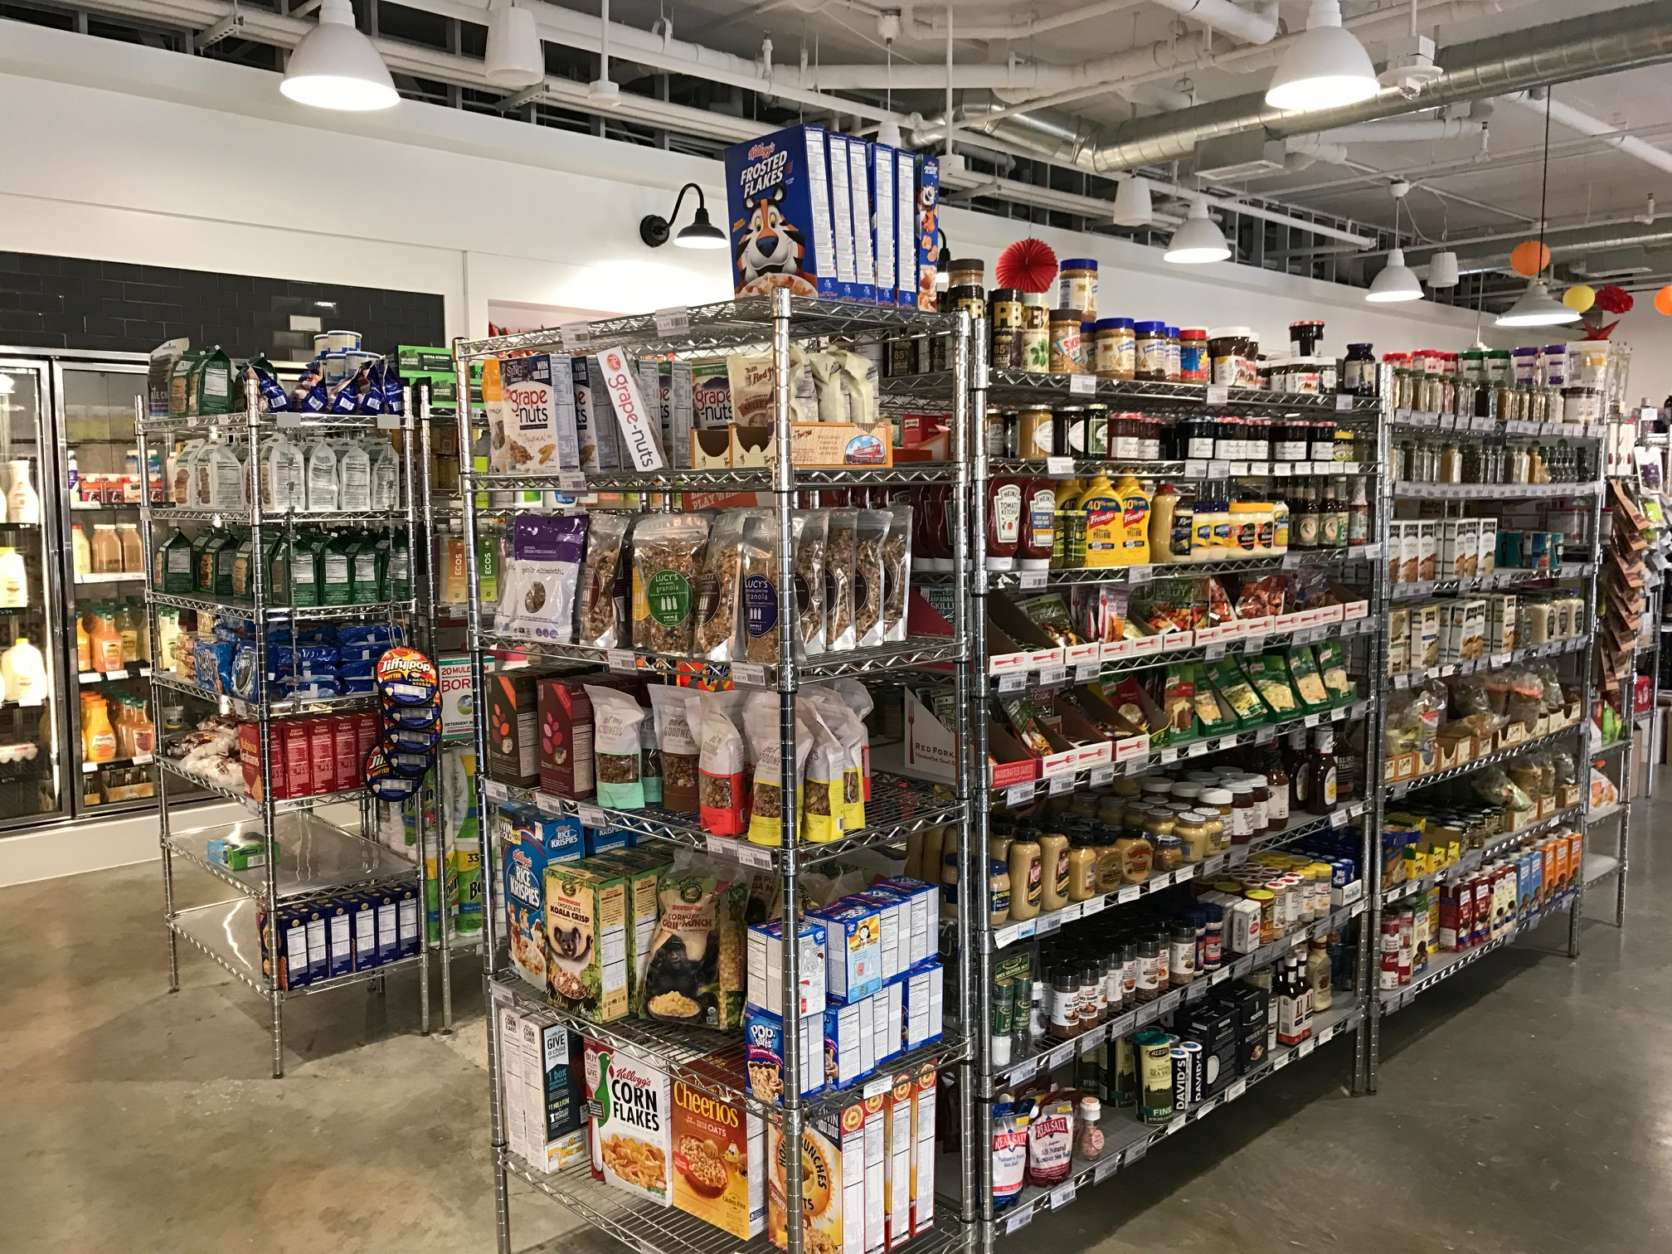 Soapstone Market is D.C.'s newest neighborhood food market. Customers can find typical grocery items alongside prepared foods, made-to-order meals, coffee and baked goods. (WTOP/Rachel Nania)